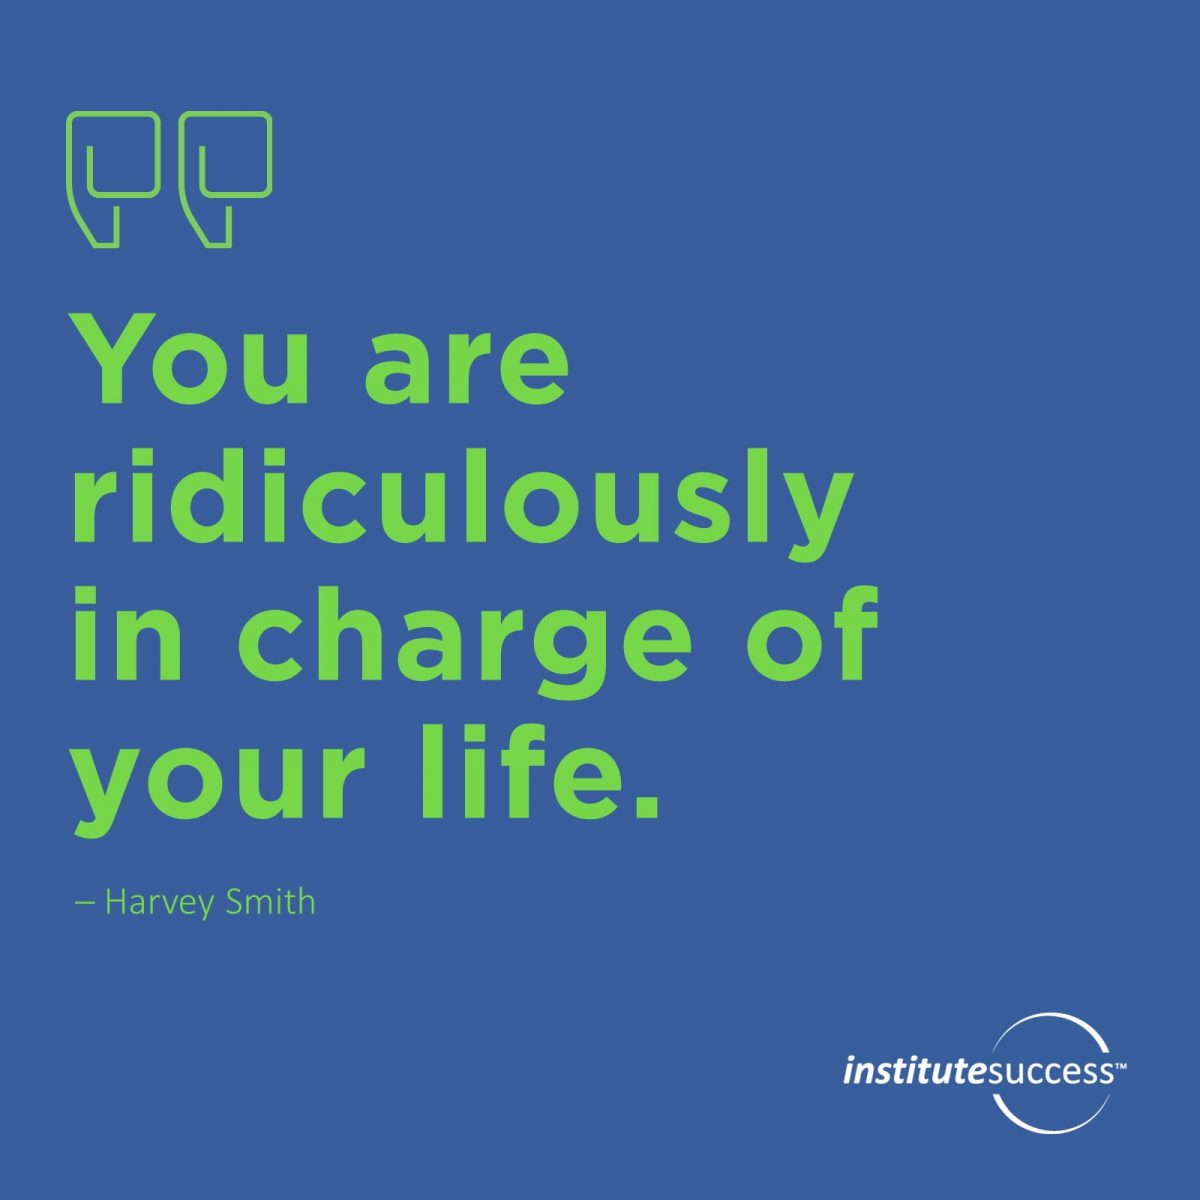 You are ridiculously in charge of your life – Harvey Smith